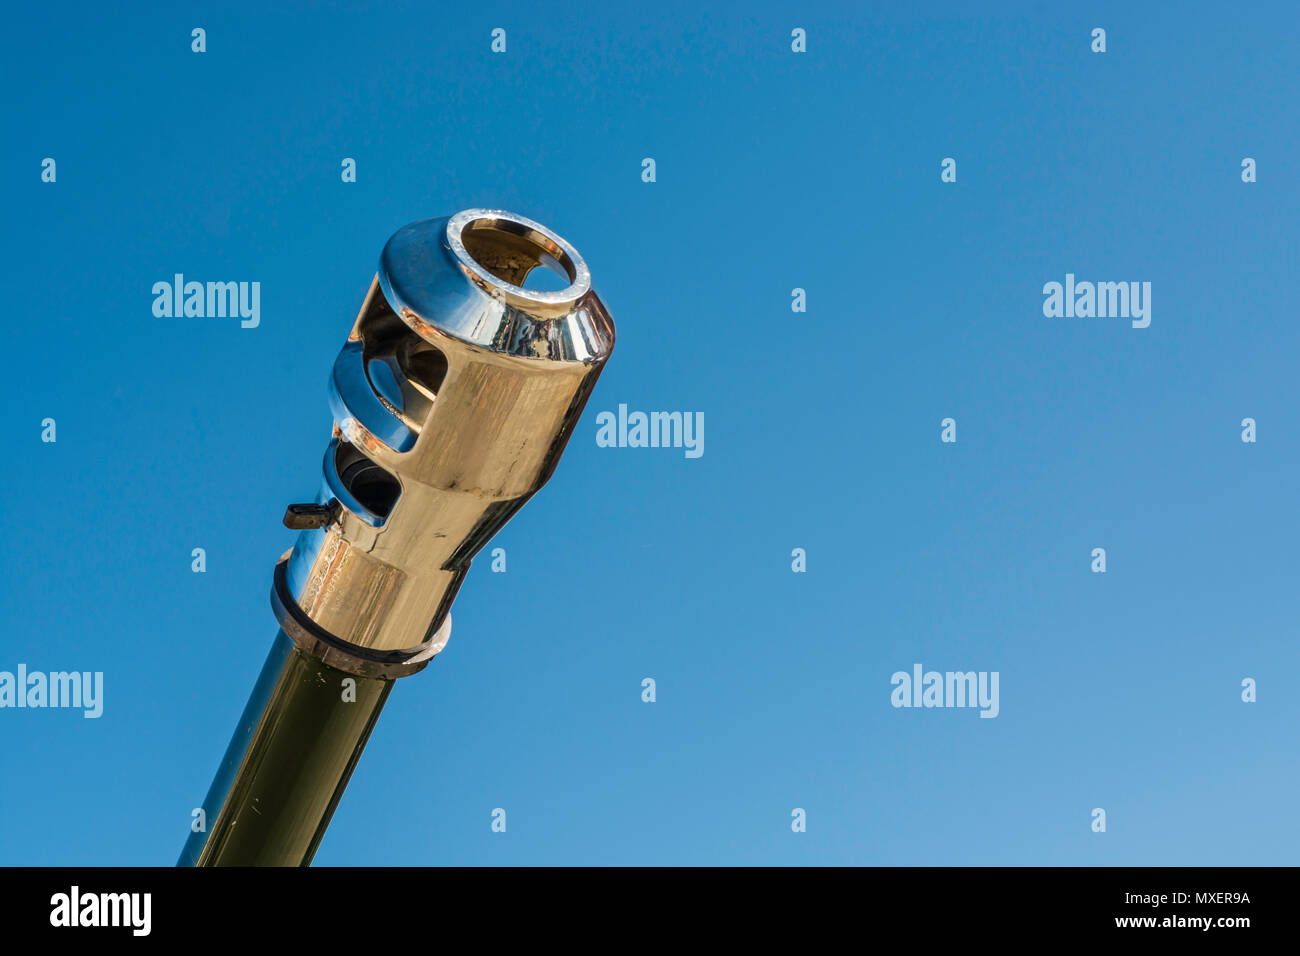 This is the end of the barrel of a L118 Light Gun as used by the British Army. - Stock Image